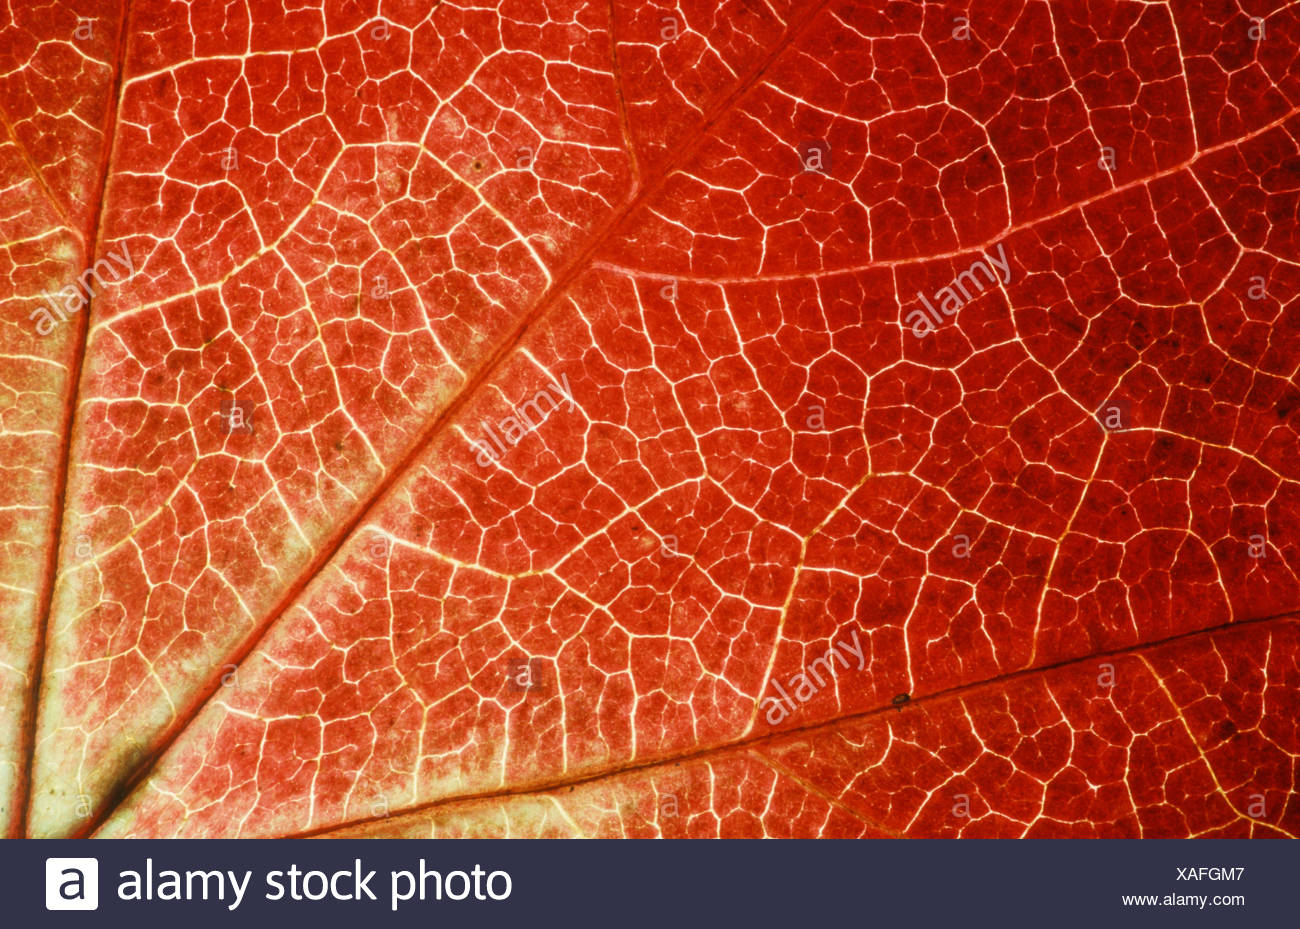 Boston Ivy leaf detail in autumn Parthenocissus tricuspidata veitchii Wilder Wein Blattdetail im Herbst Weinrebengewaechse Stock Photo